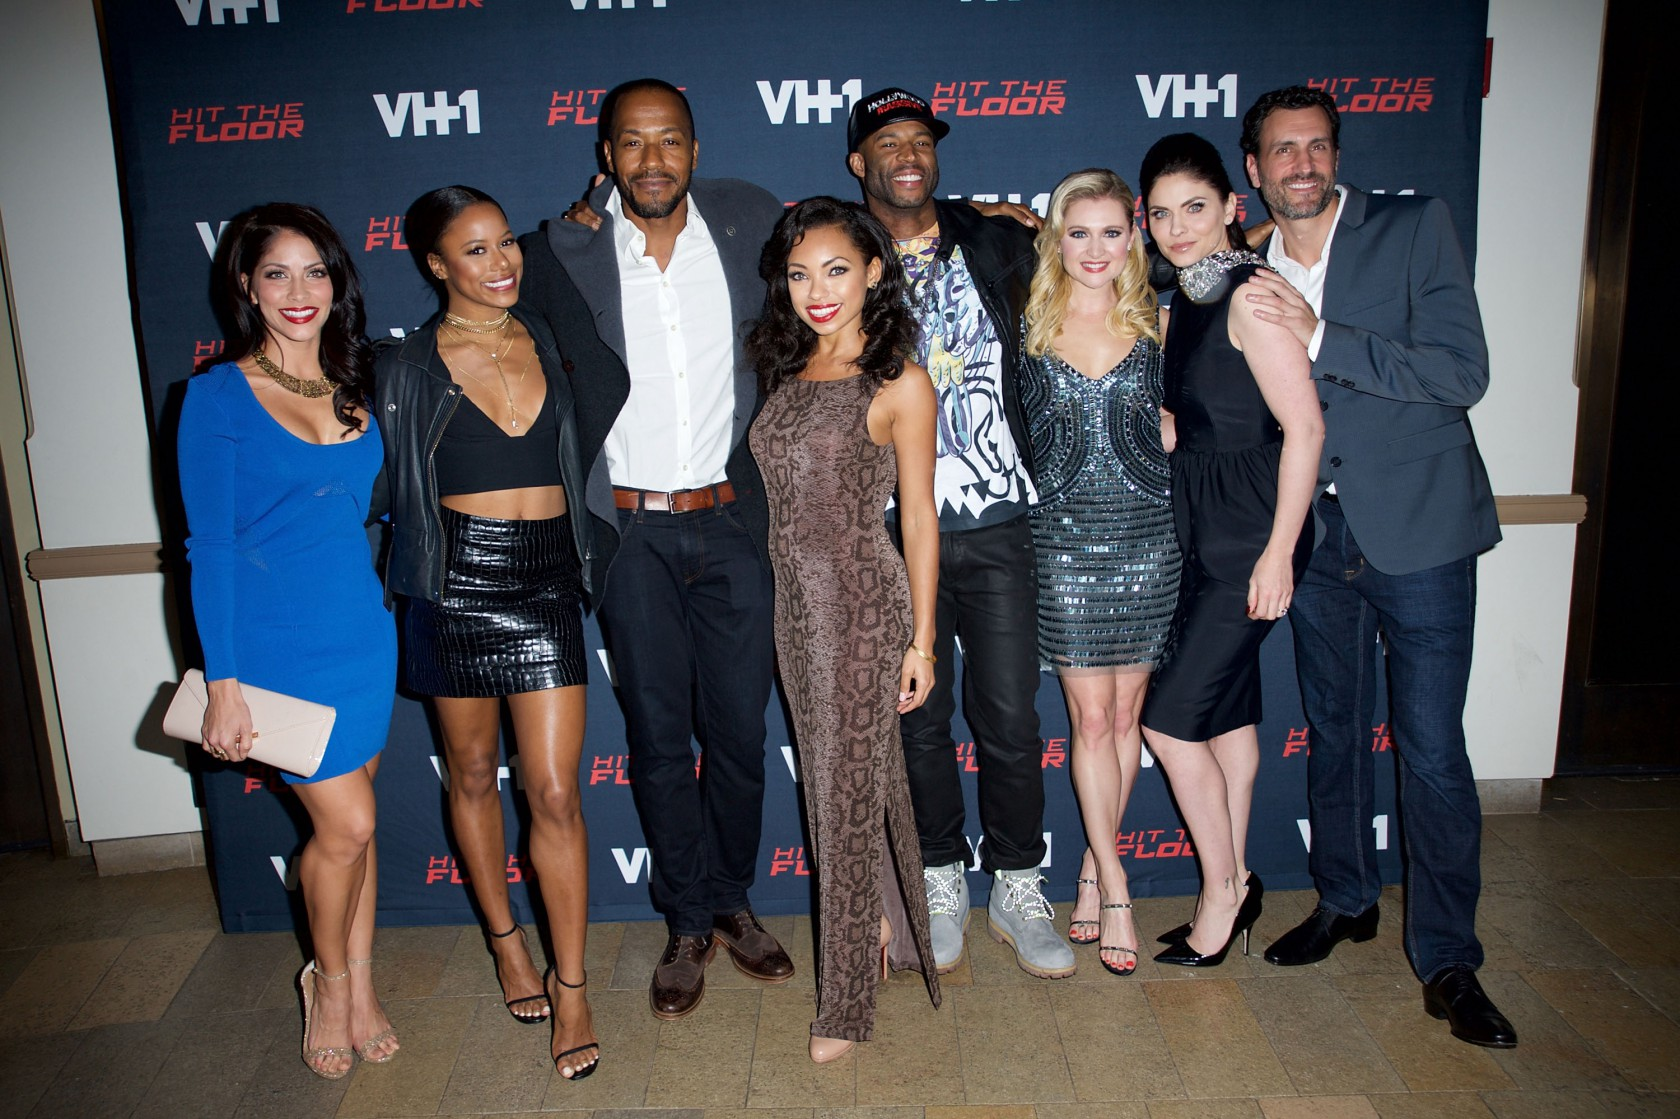 Premiere Of VH1's 'Hit The Floor' Season 3 - Arrivals